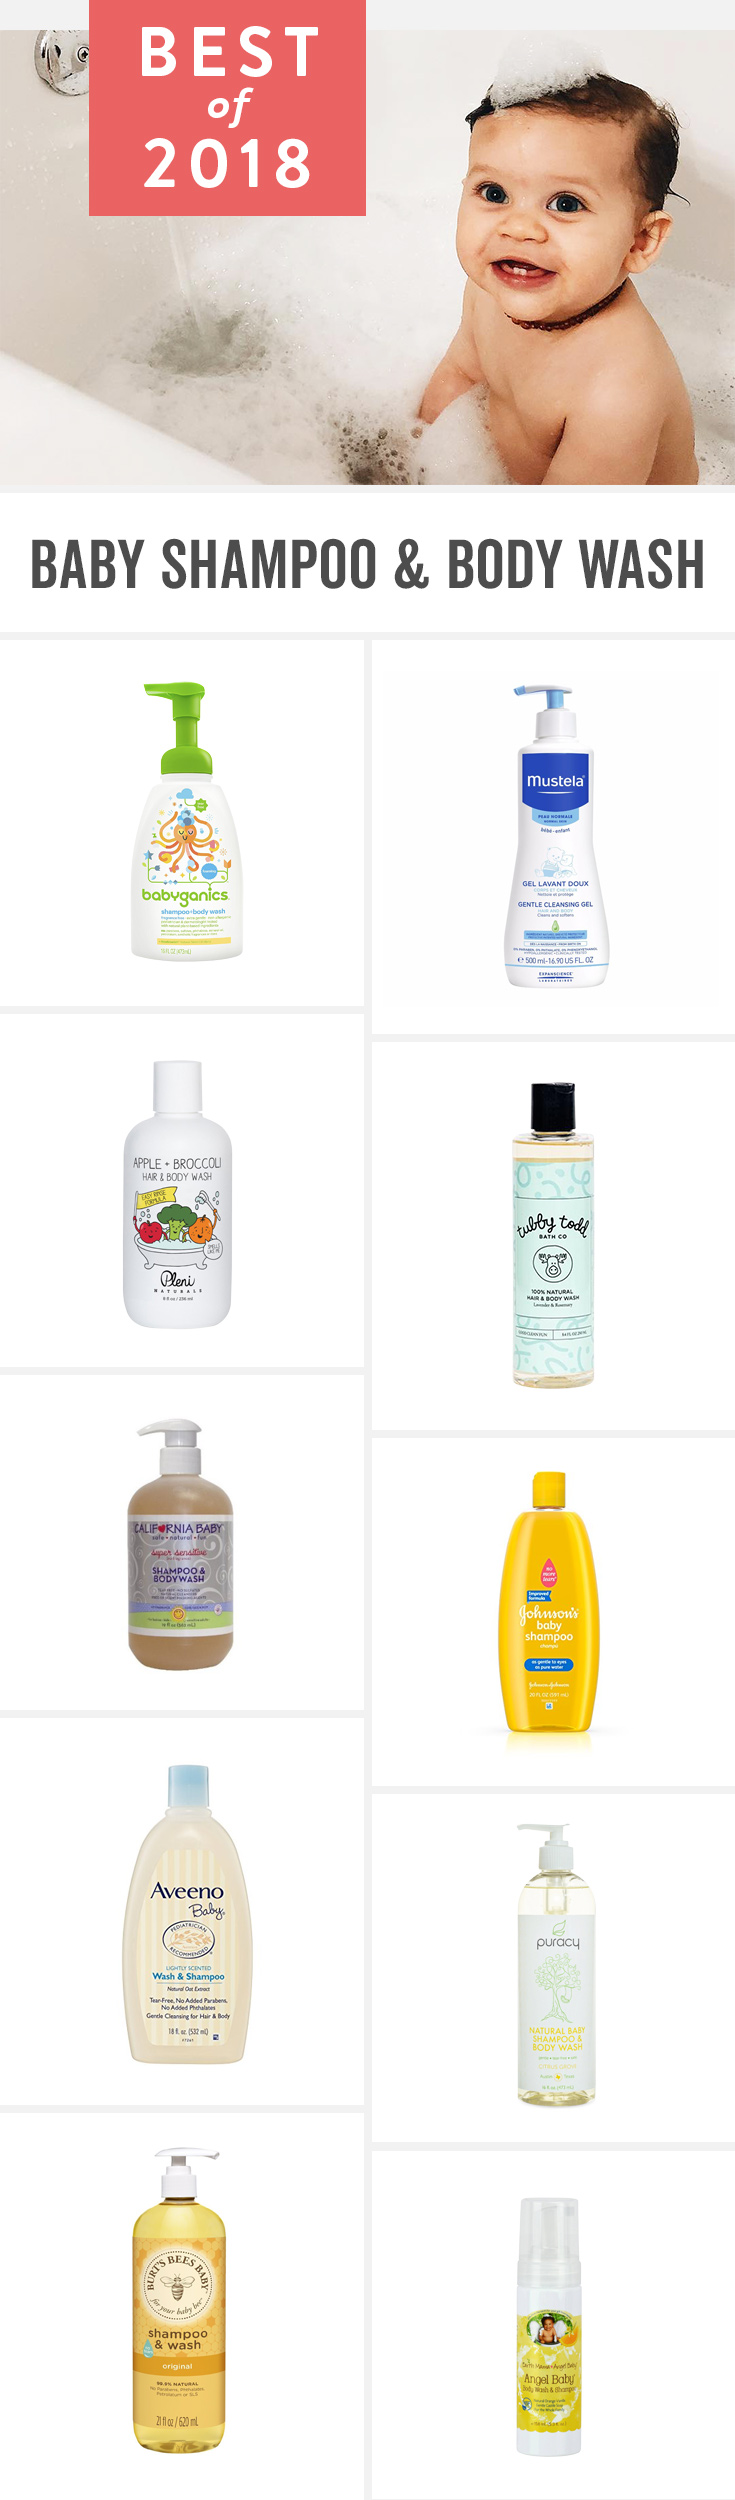 Best Baby Shampoo & Body Wash of 2018